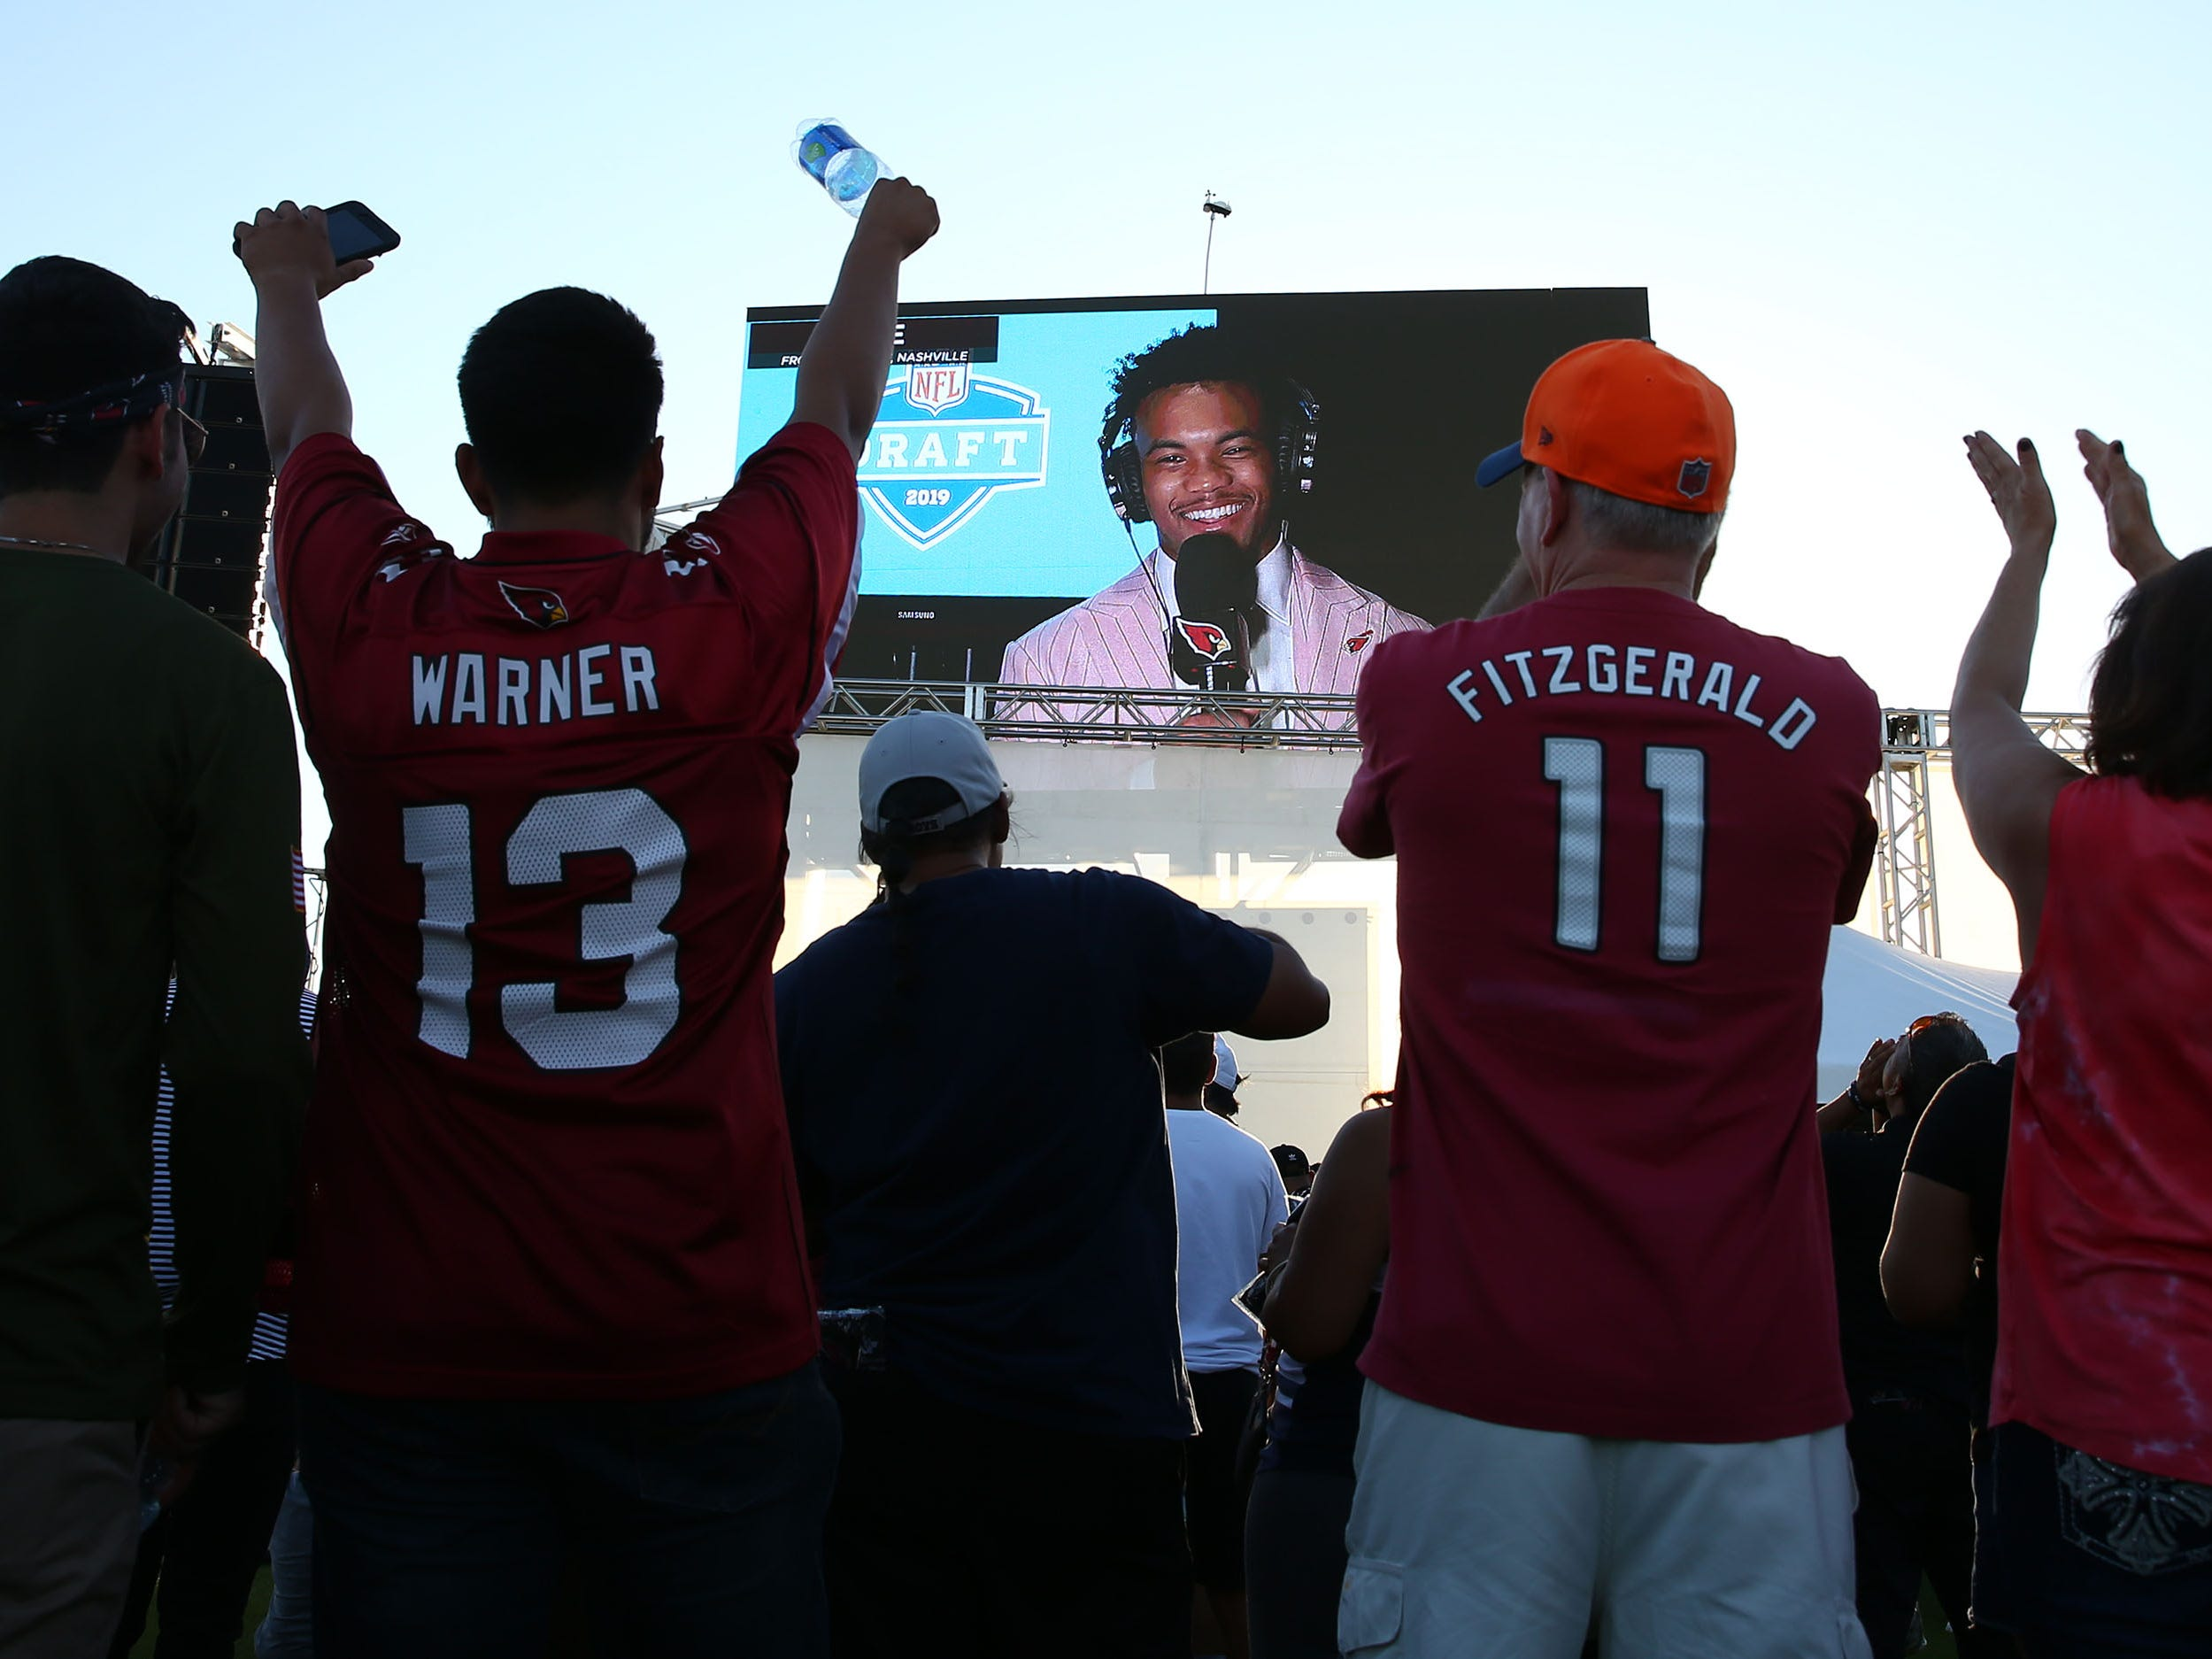 Arizona Cardinals number one draft pick quarterback Kyler Murray from Oklahoma talks to the fans on the Great lawn during the NFL Draft watch party at State Farm Stadium on Apr. 25, 2019 in Glendale, Ariz.